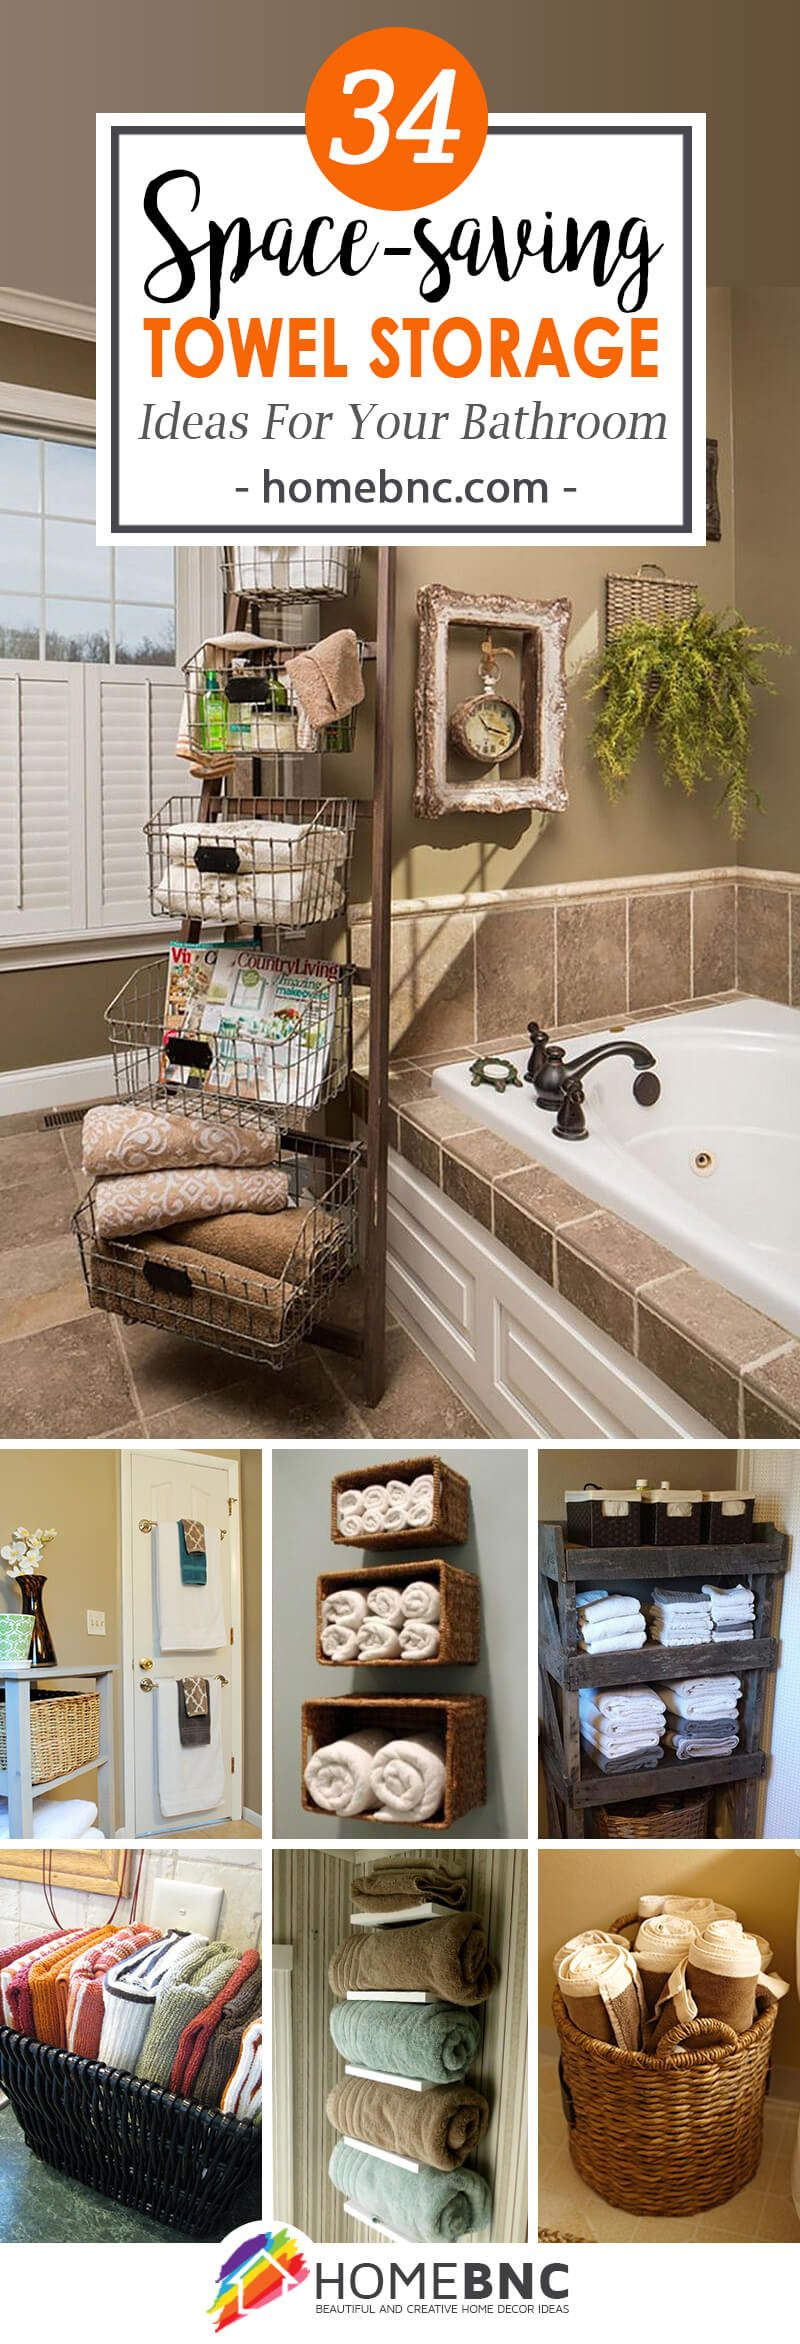 Unique Storage Ideas For A Small Bathroom To Make Yours Bigger - Bath towels clearance for small bathroom ideas